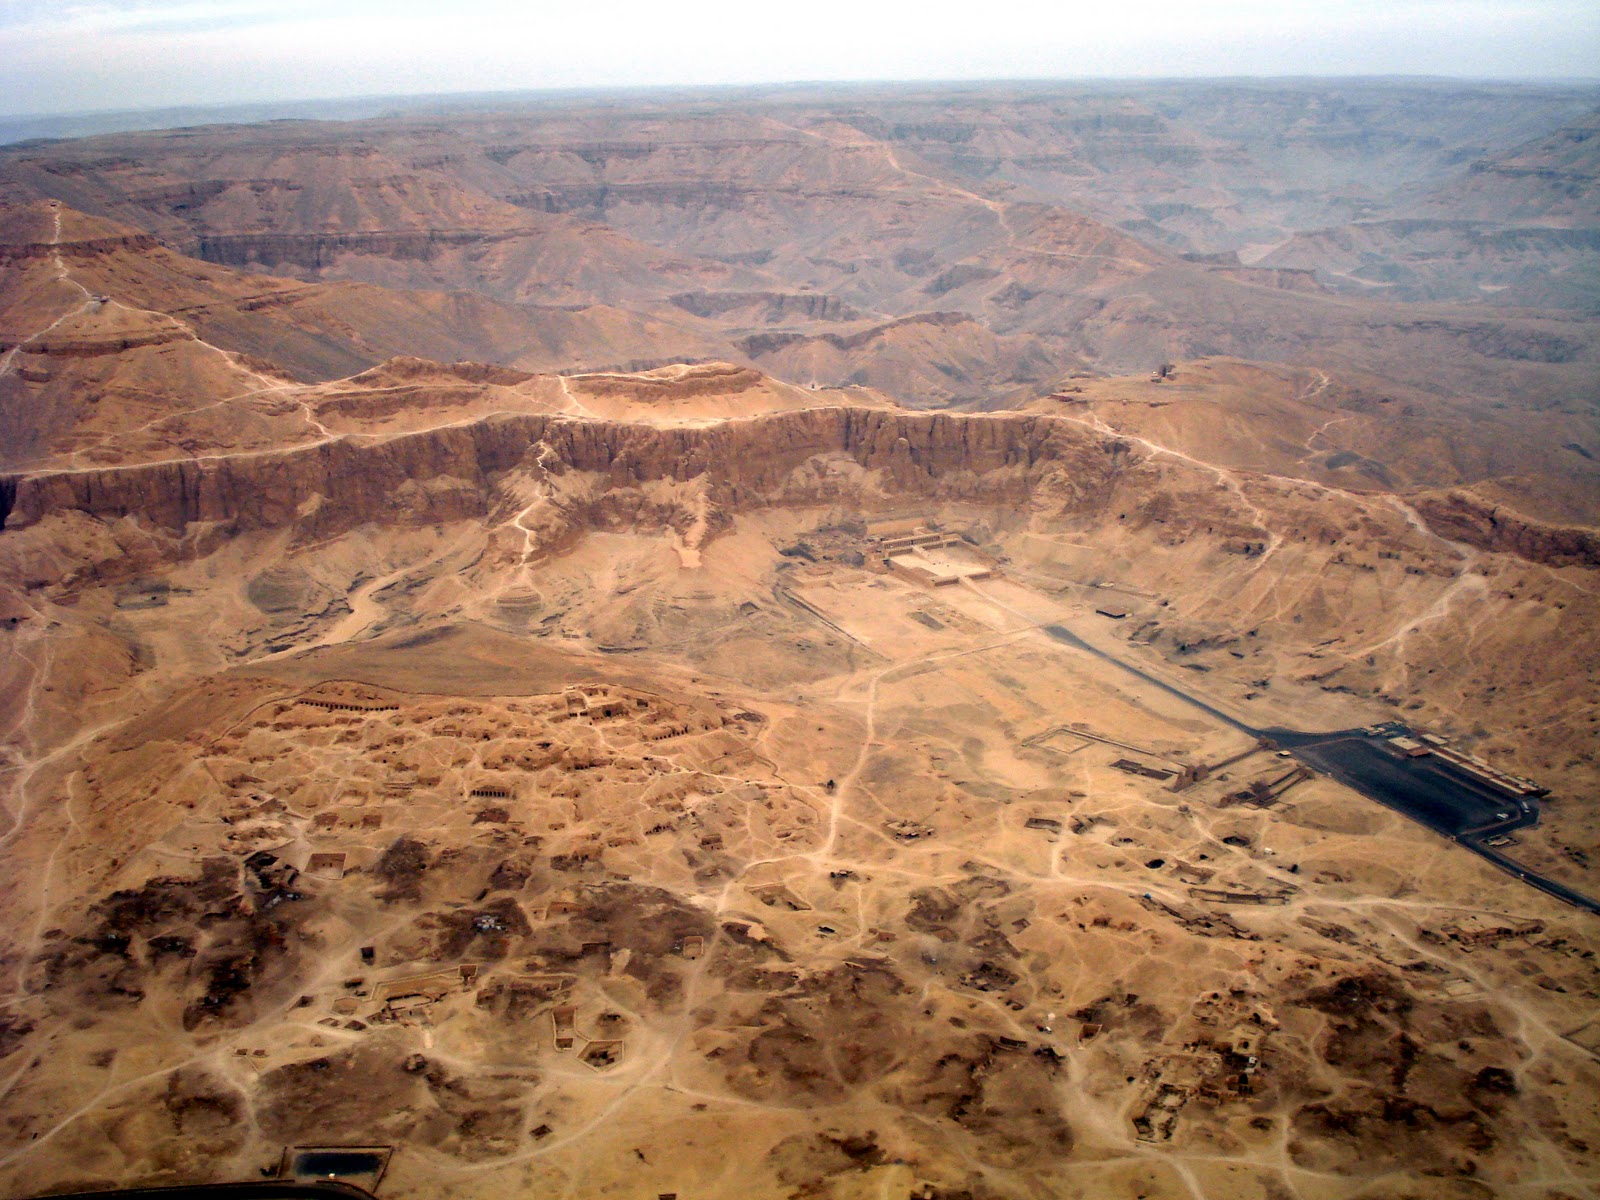 Travel Trip Journey: Valley of the Kings, Egypt